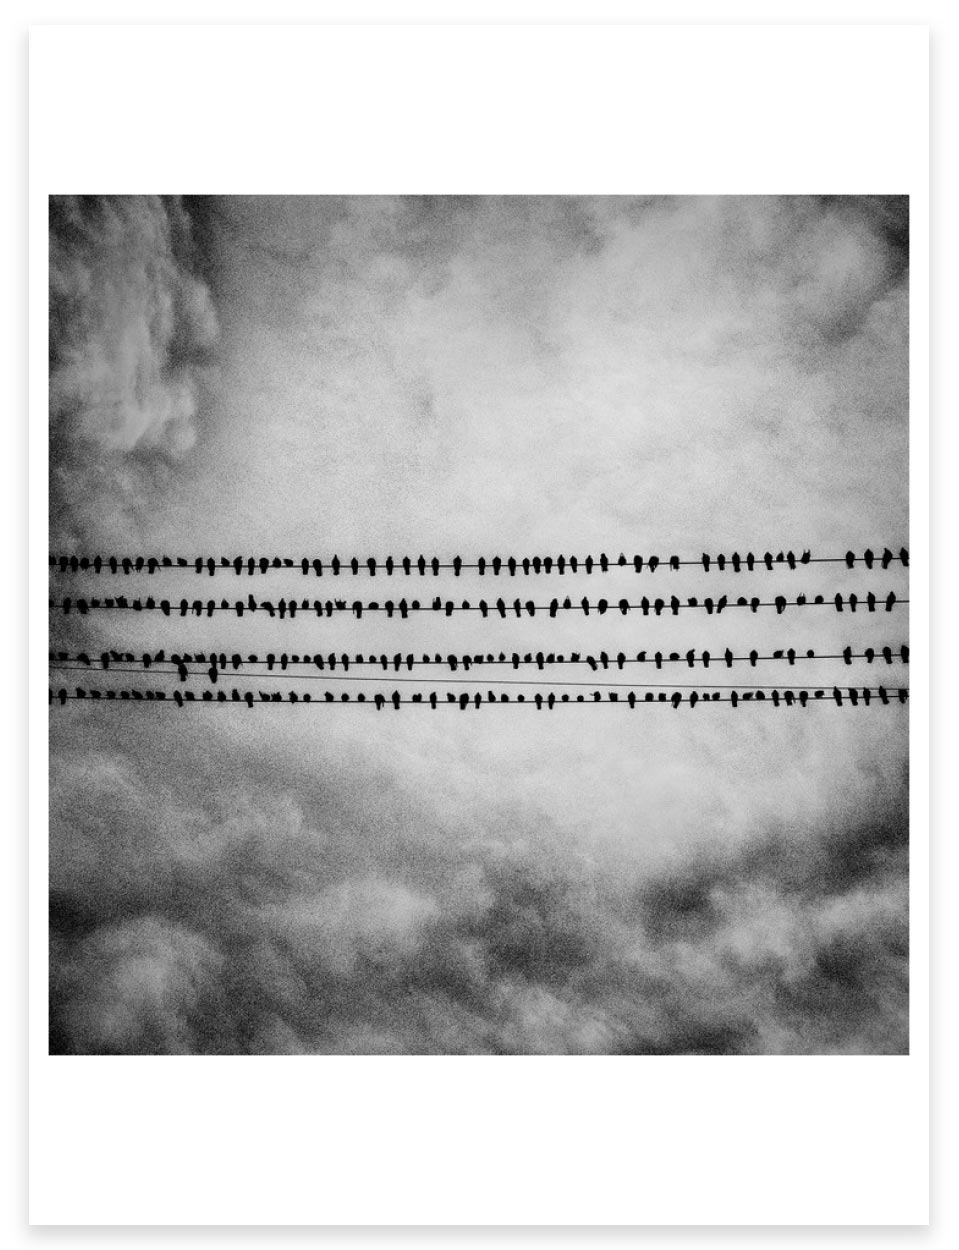 Magnum Editions Poster: Birds. Tulare, California. 2014.